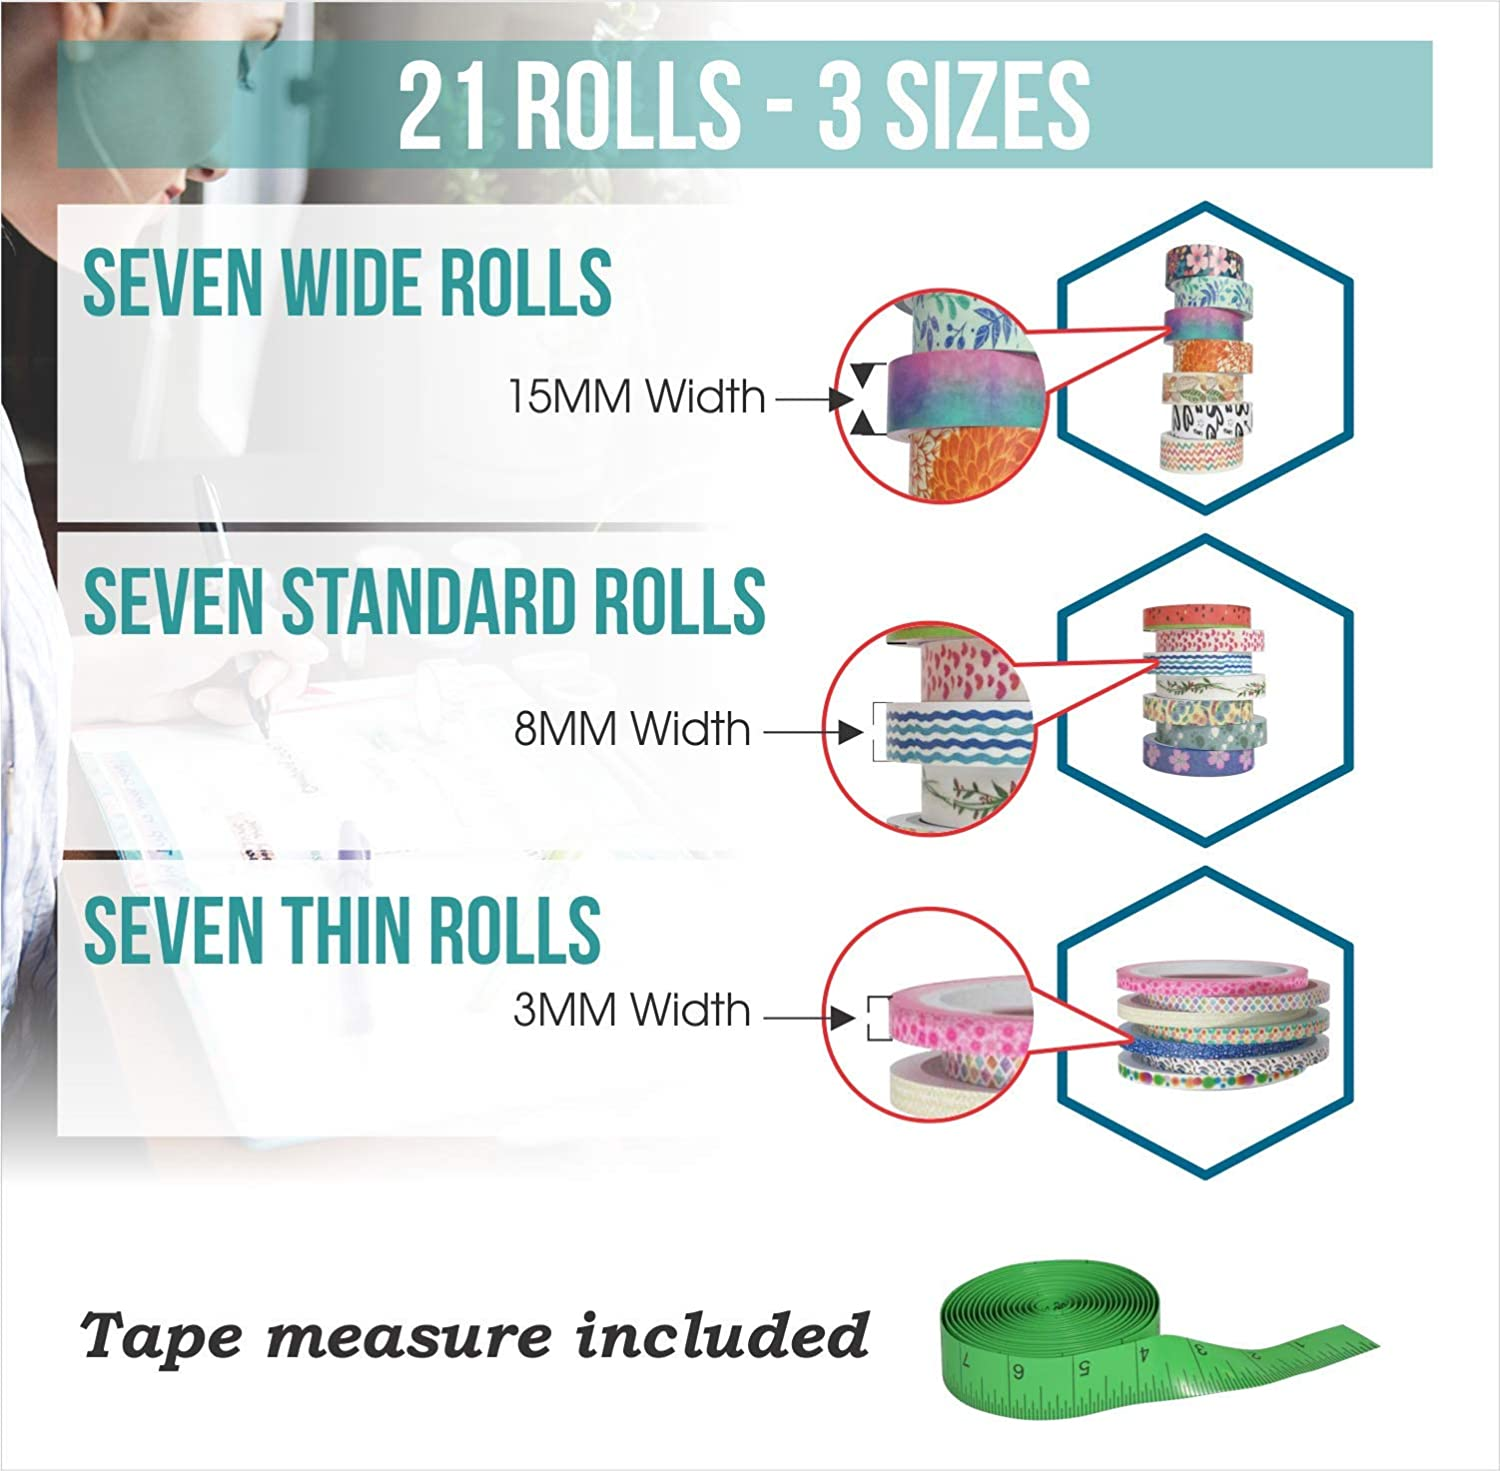 Bujo Supplies Cute Washi Tape Set with 3 sizes Decorative Holiday Craft Tape Colorful Tape 15mm 8mm and 3mm Wide Skinny and Thin Scrapbook Tape 21 Rolls Floral Japanese Pastel Seasonal Art